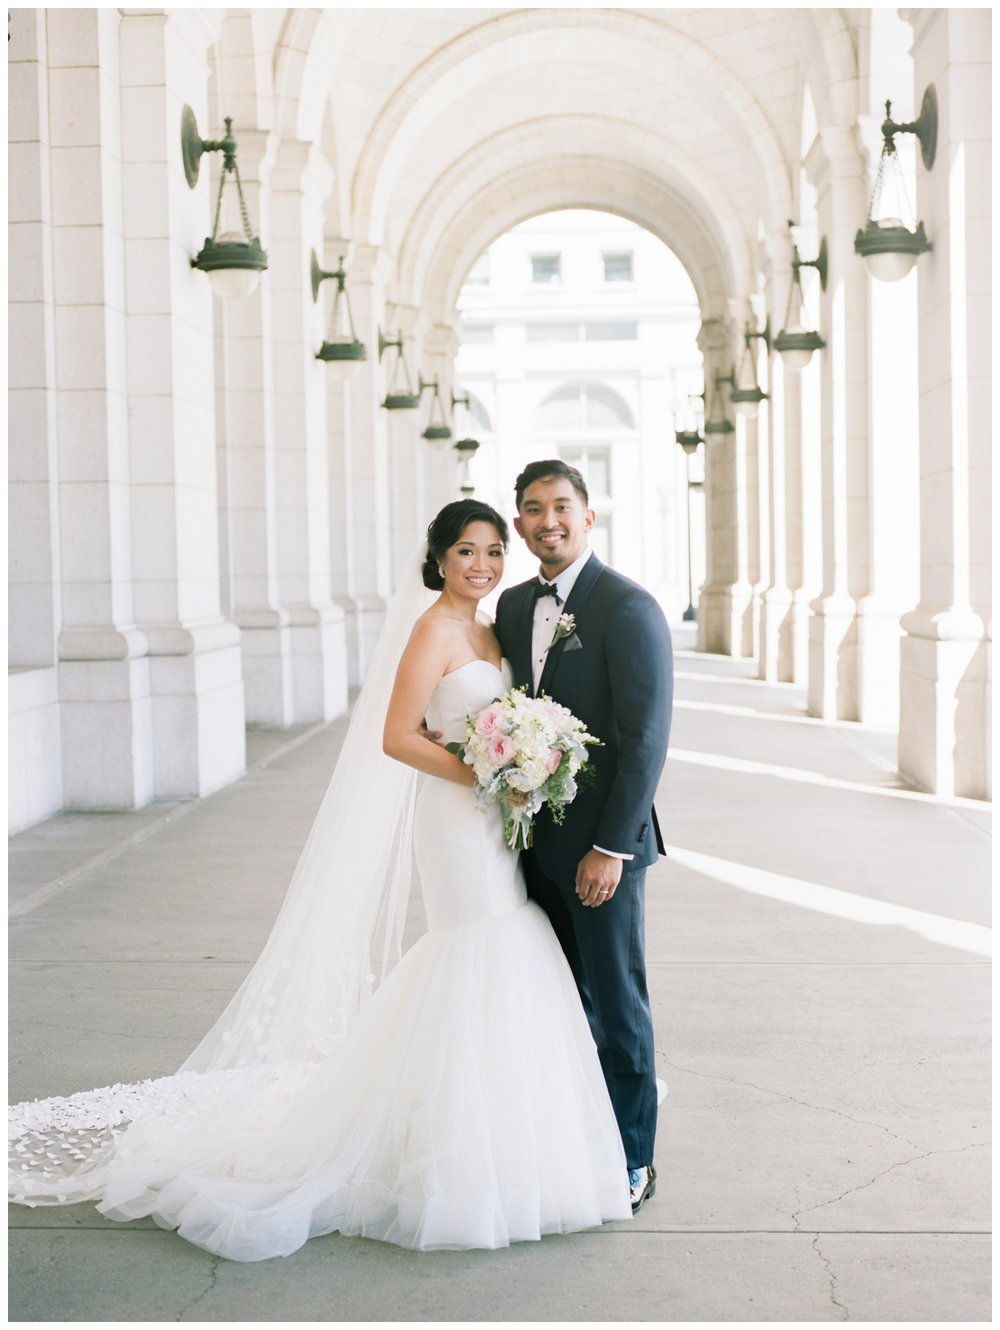 Elegant summer wedding at the Mayflower Hotel in Washington DC and portraits at Union Stations by fine art wedding photographer Lissa Ryan Photography